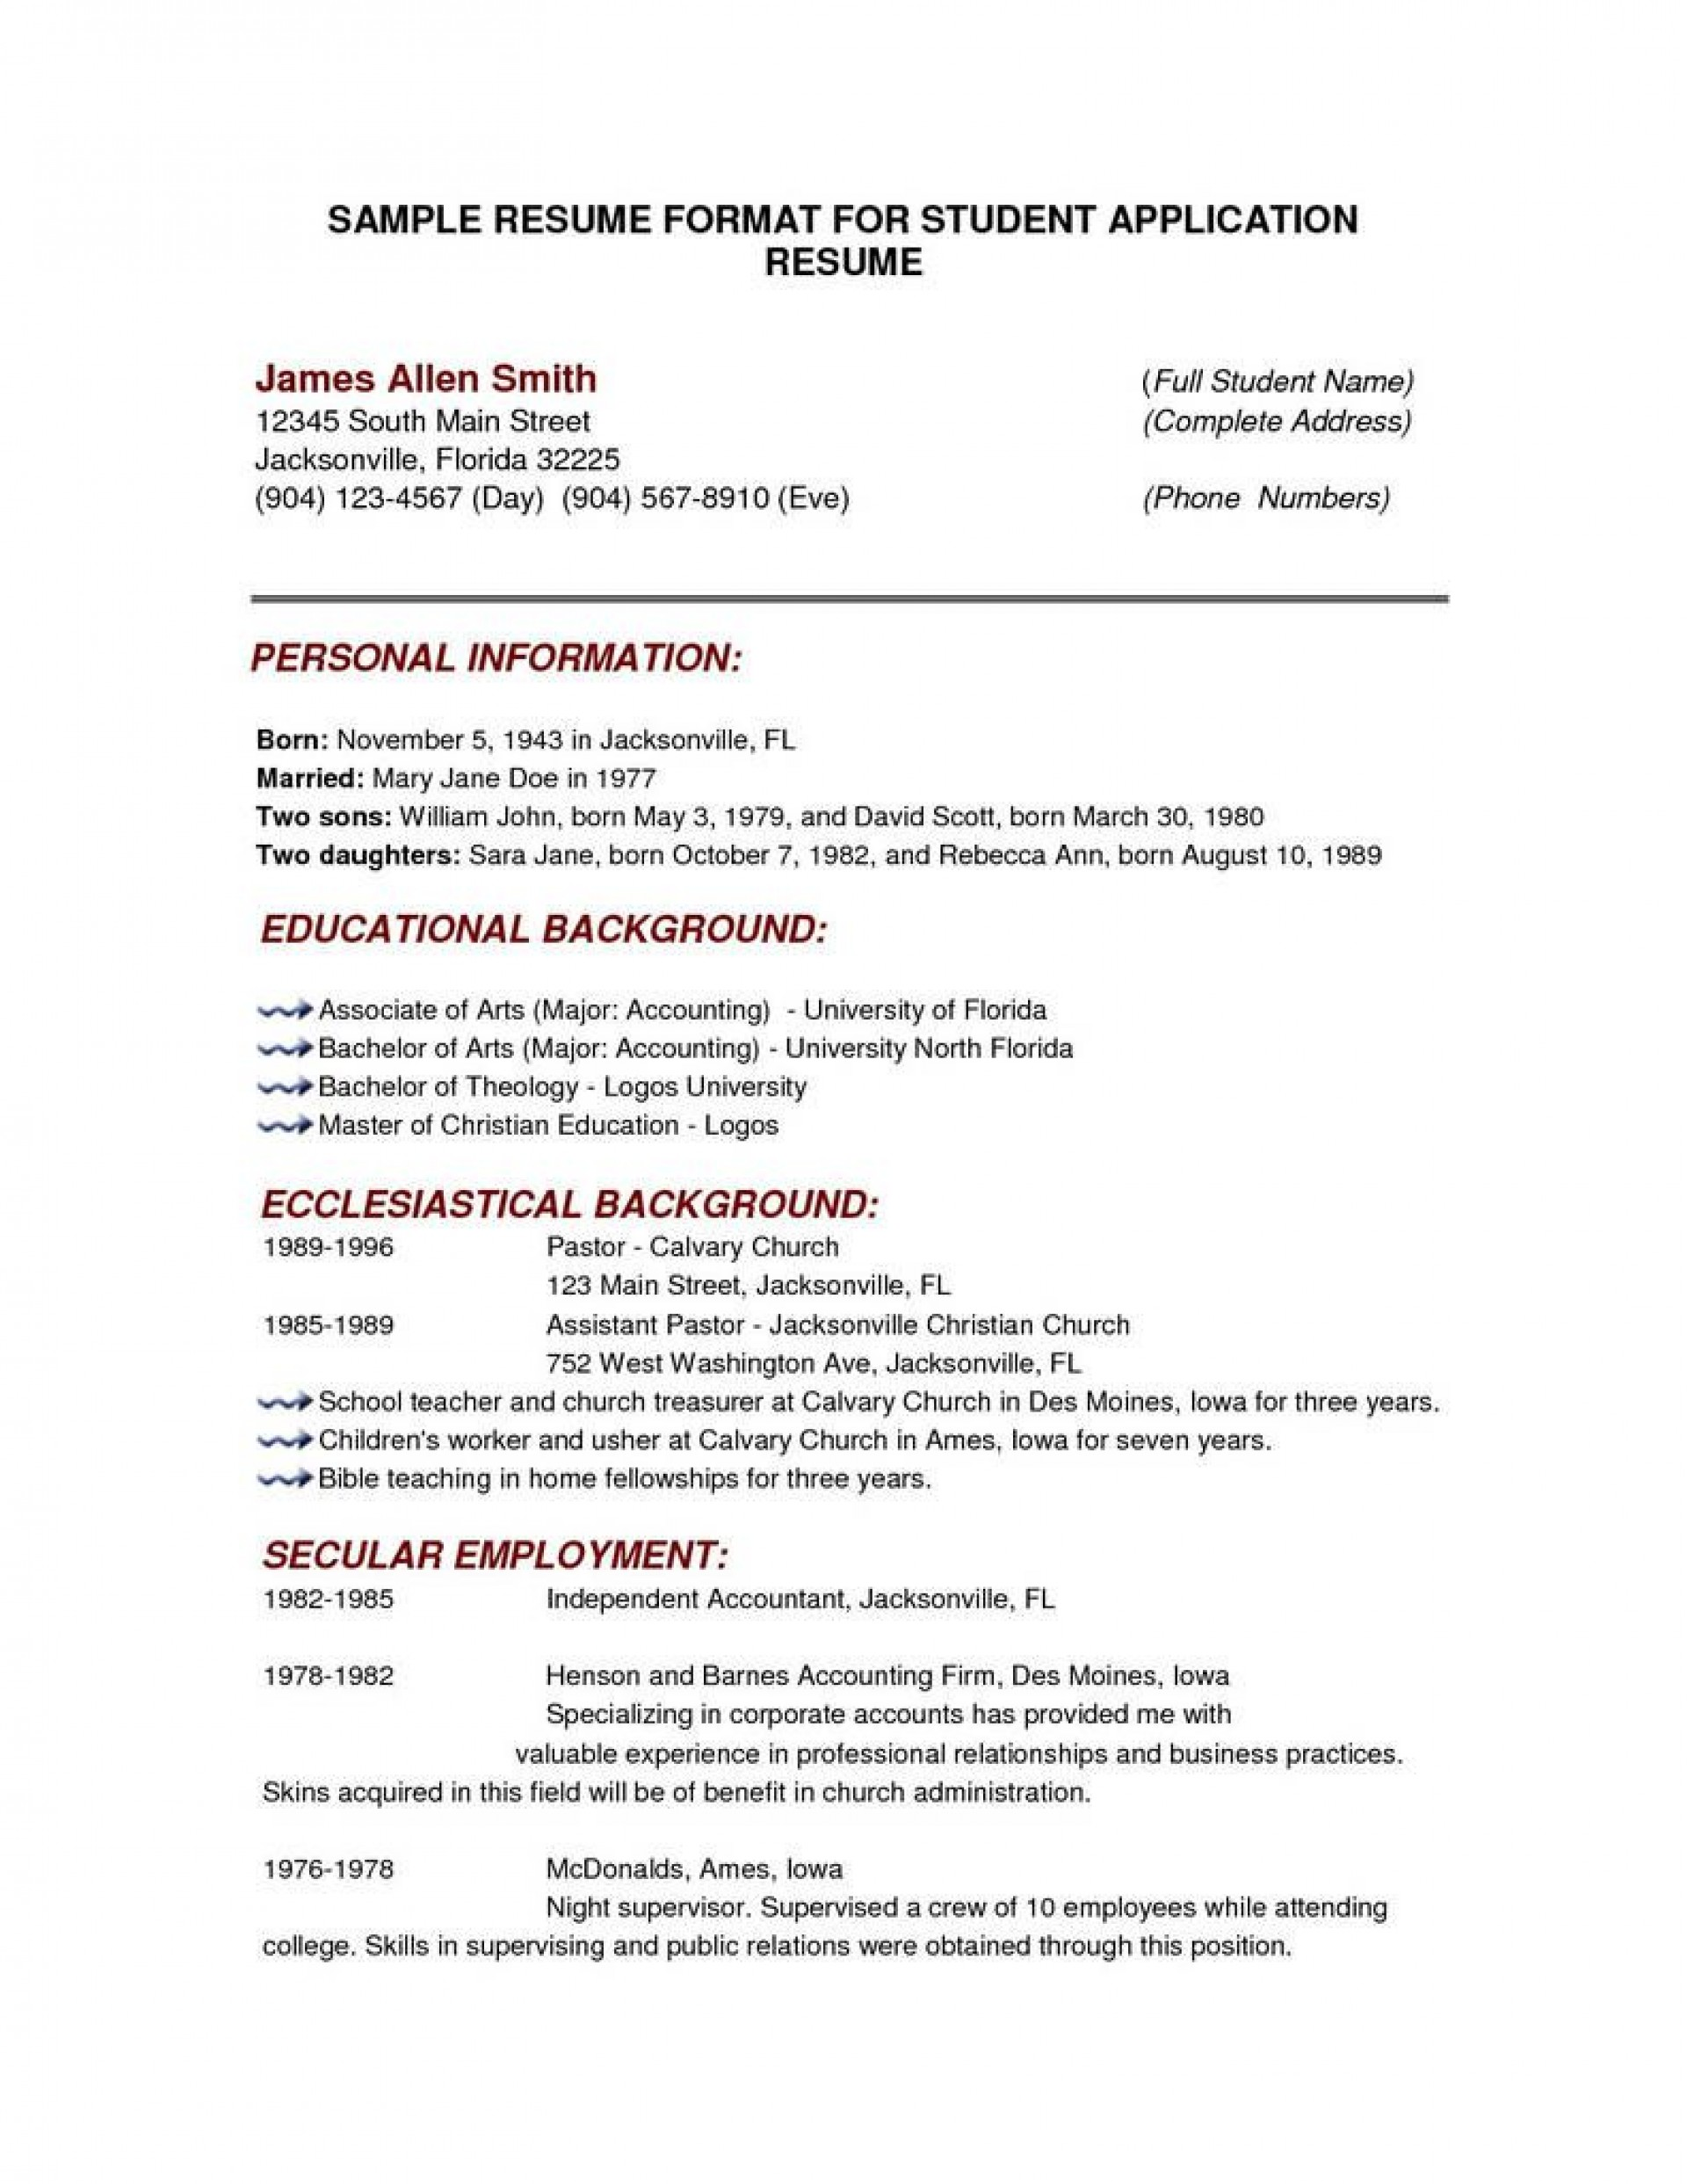 008 Exceptional Grad School Resume Template Image  Application Cv Graduate For Admission1920